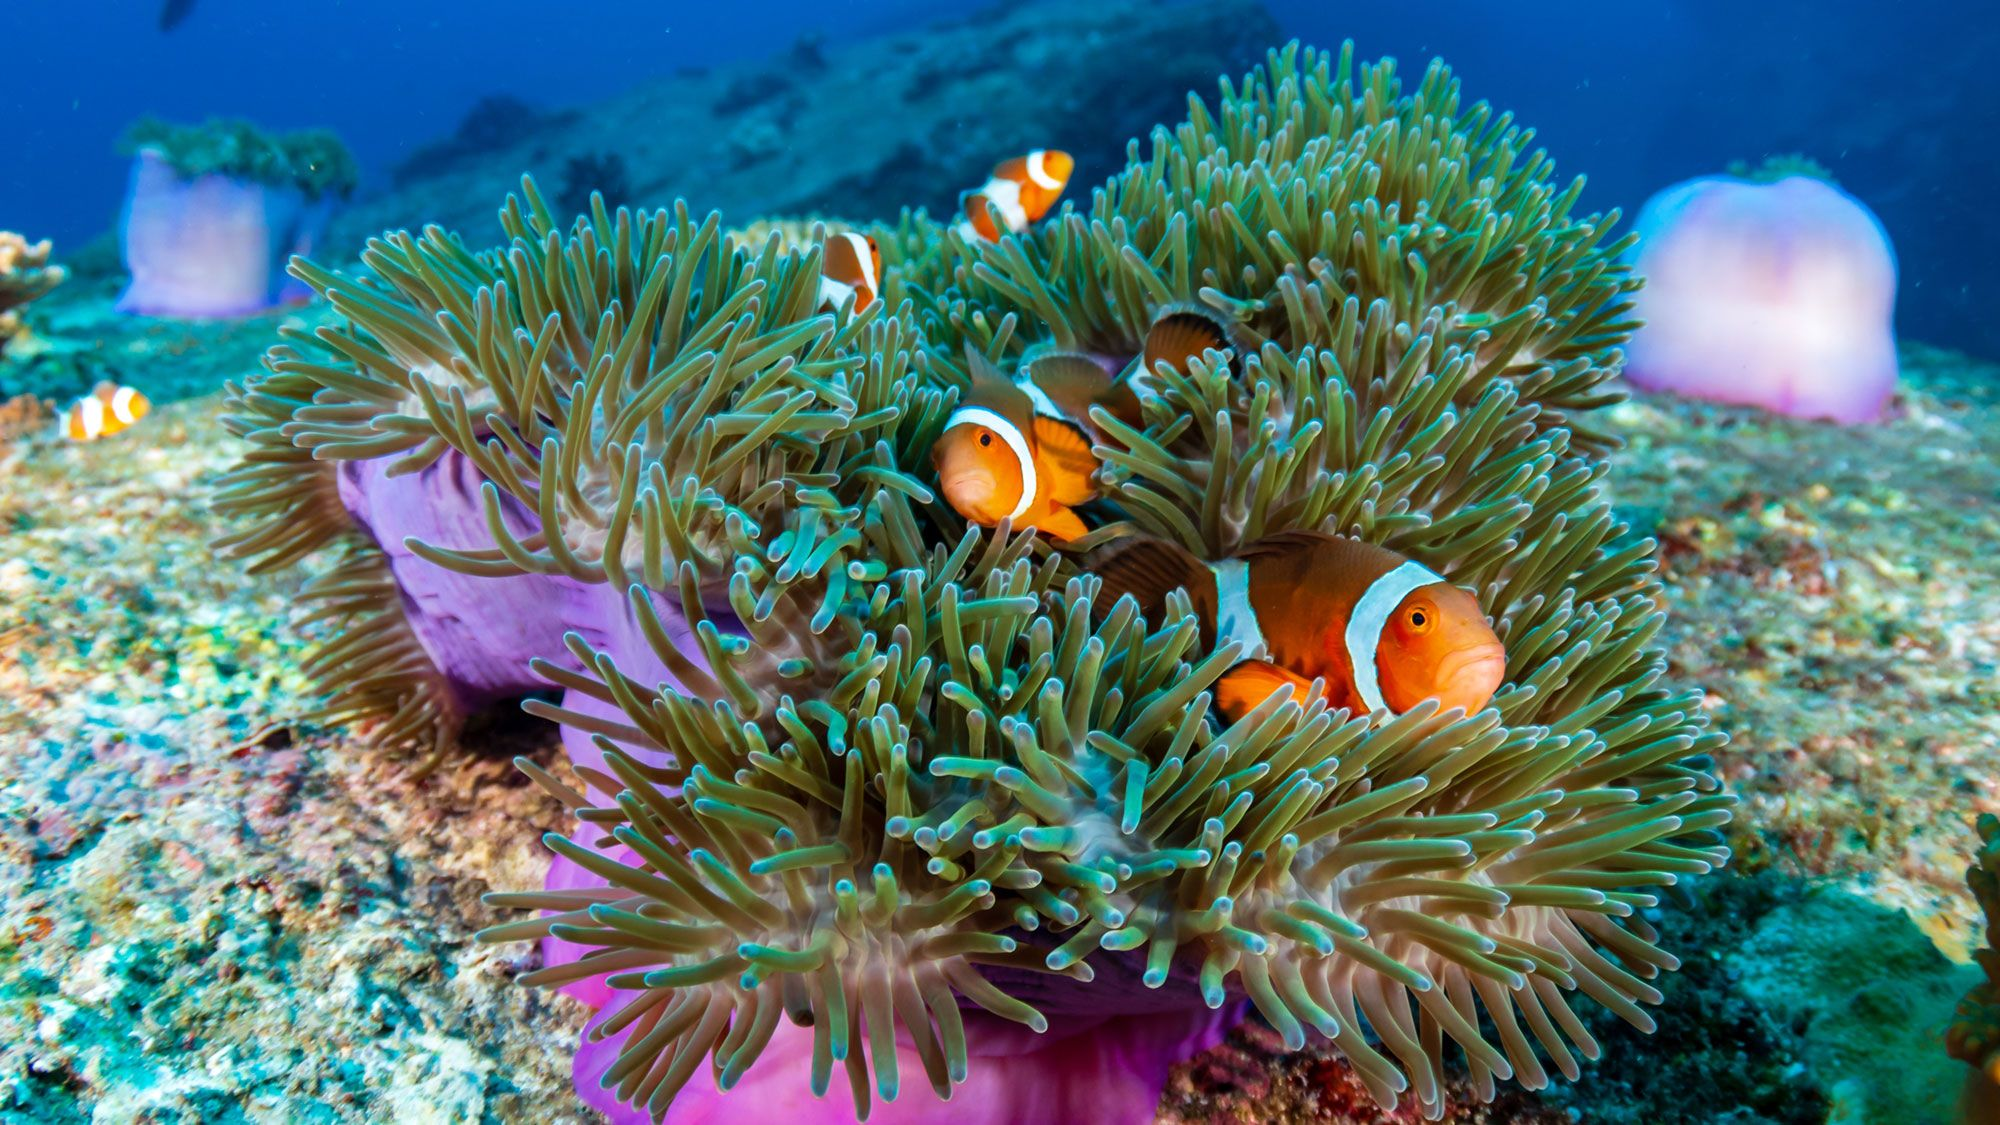 Family of cute Clownfish colorful anemone